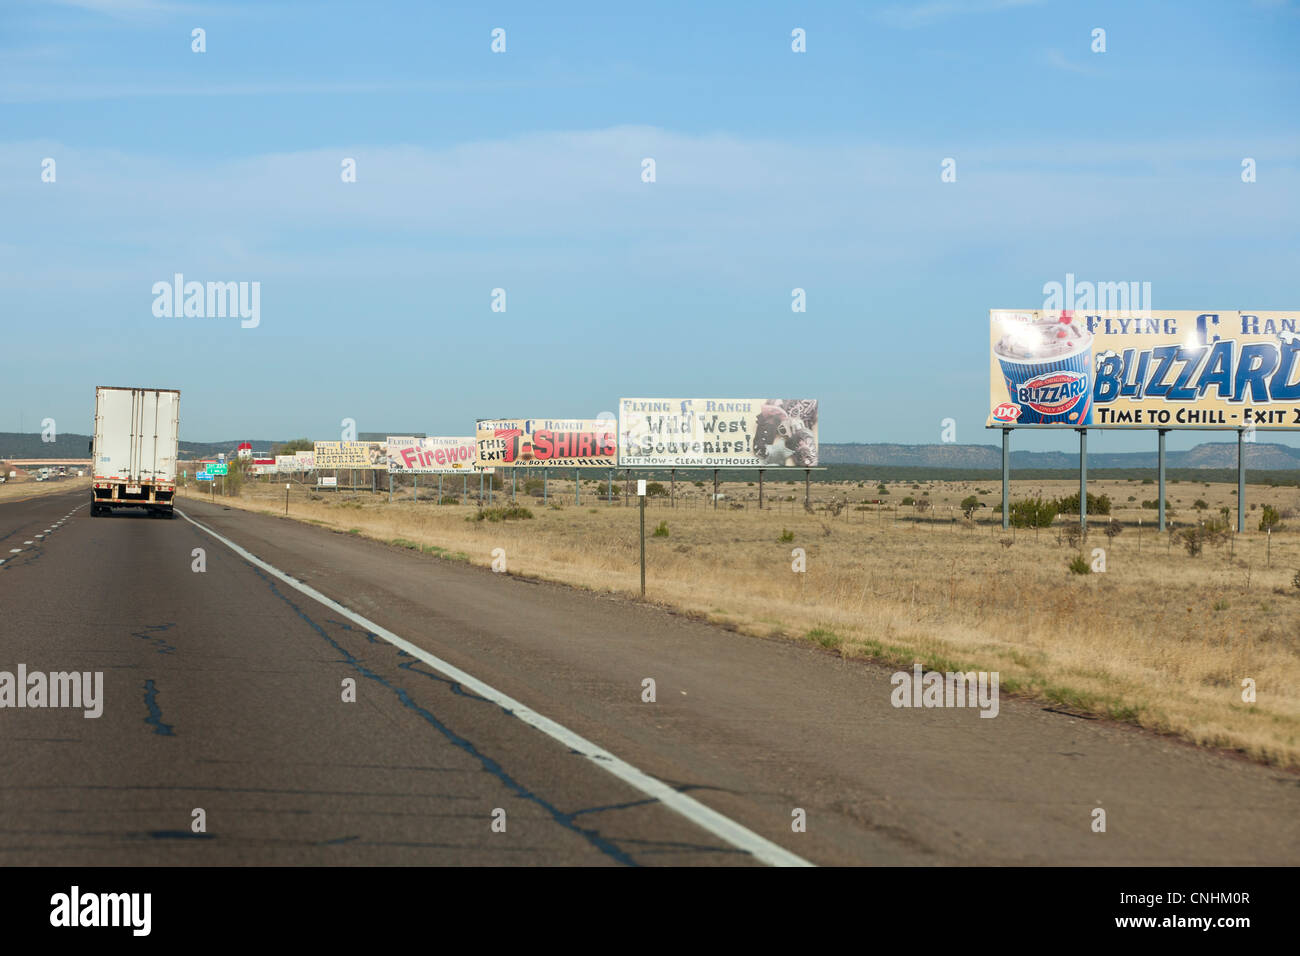 Large billboards on the side of an open highway - Stock Image